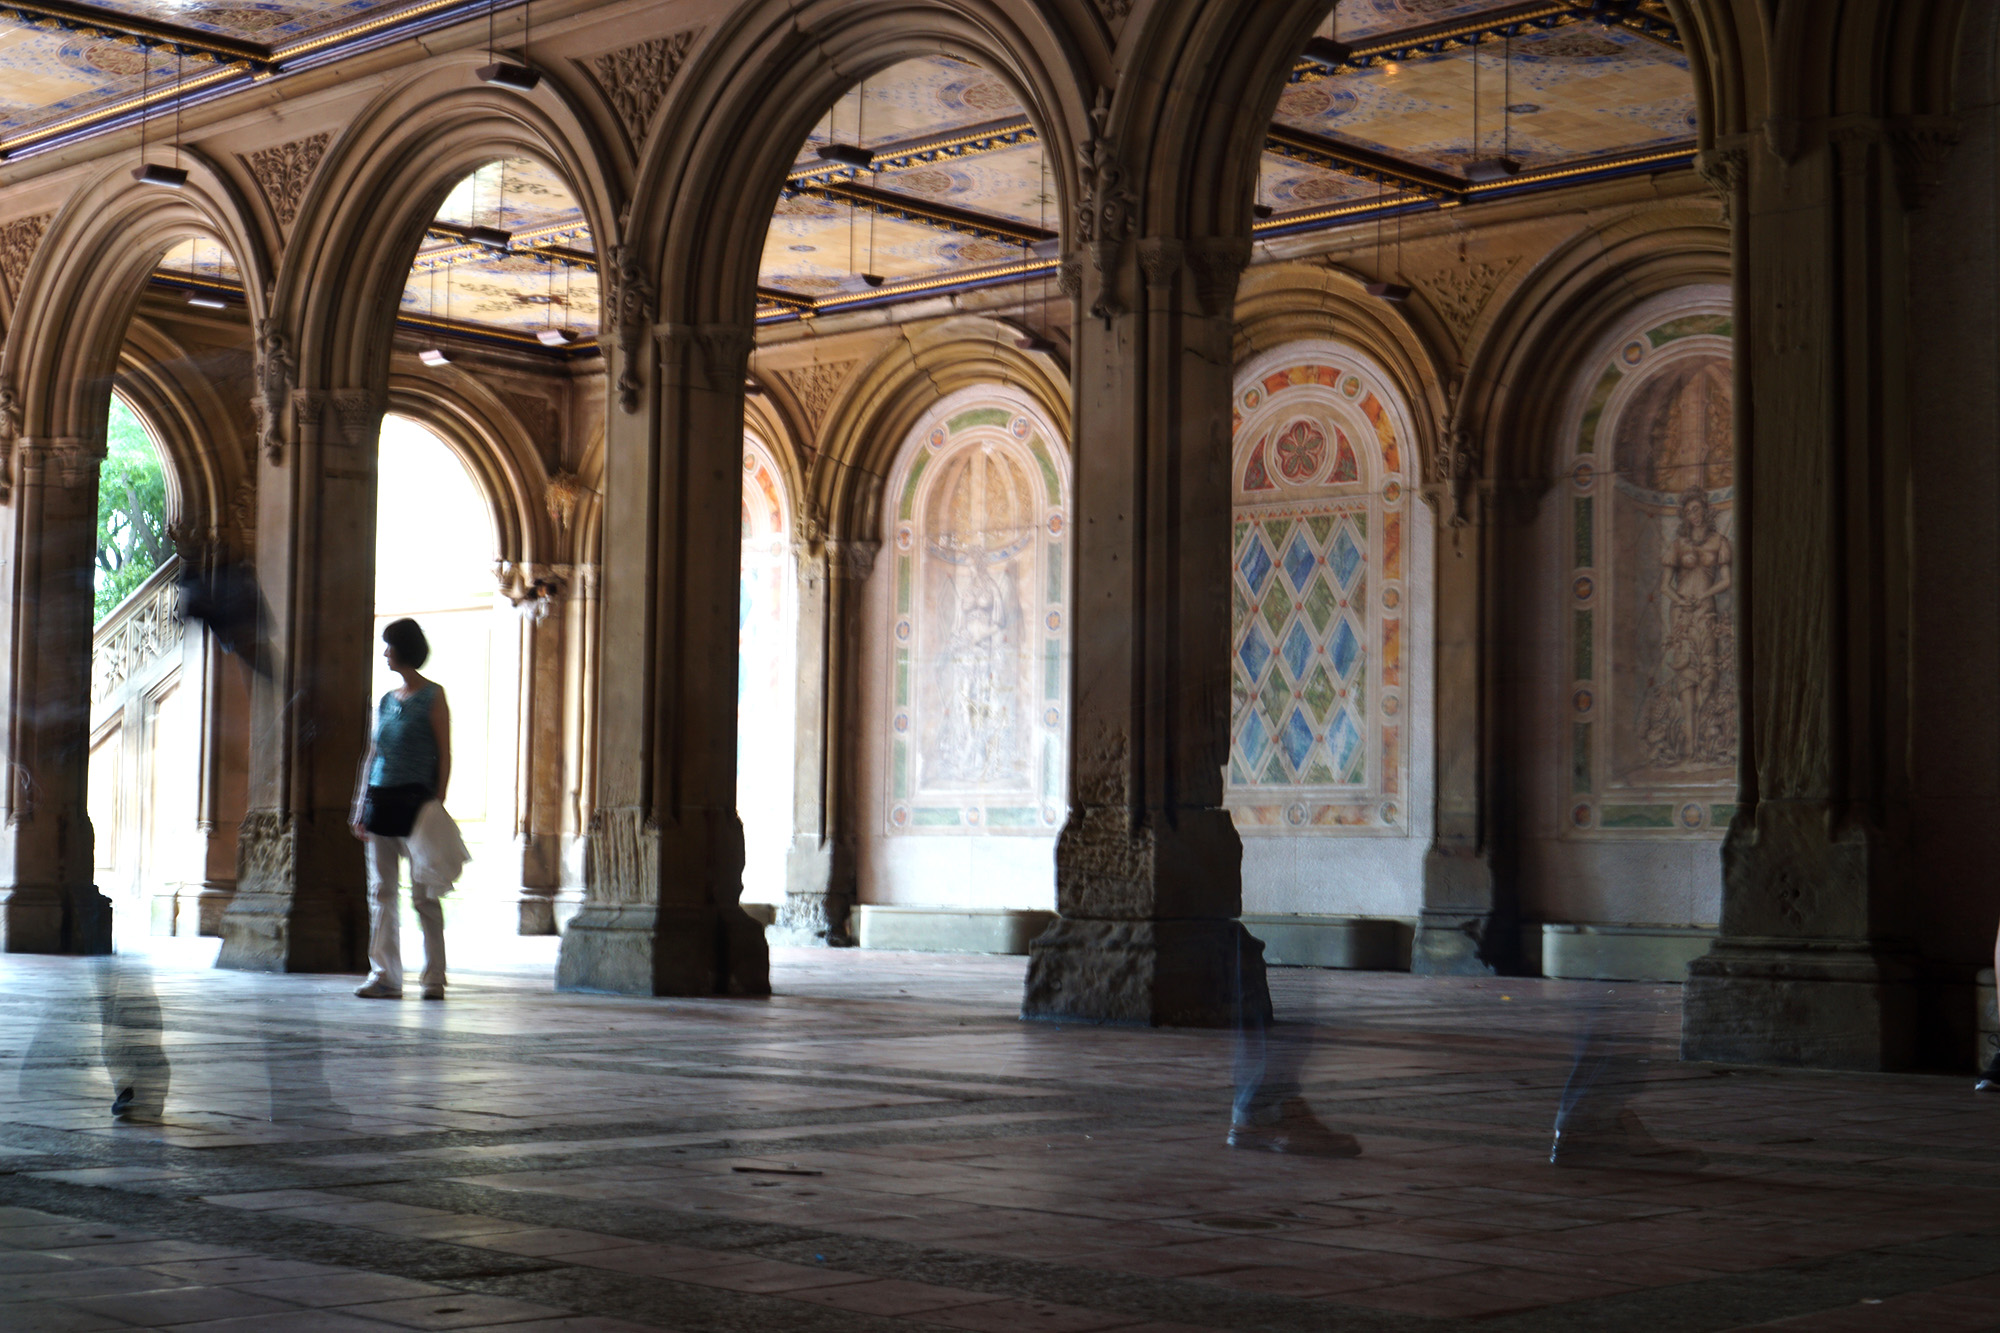 Bethesda Terrace, Central Park, New York City / Darker than Green